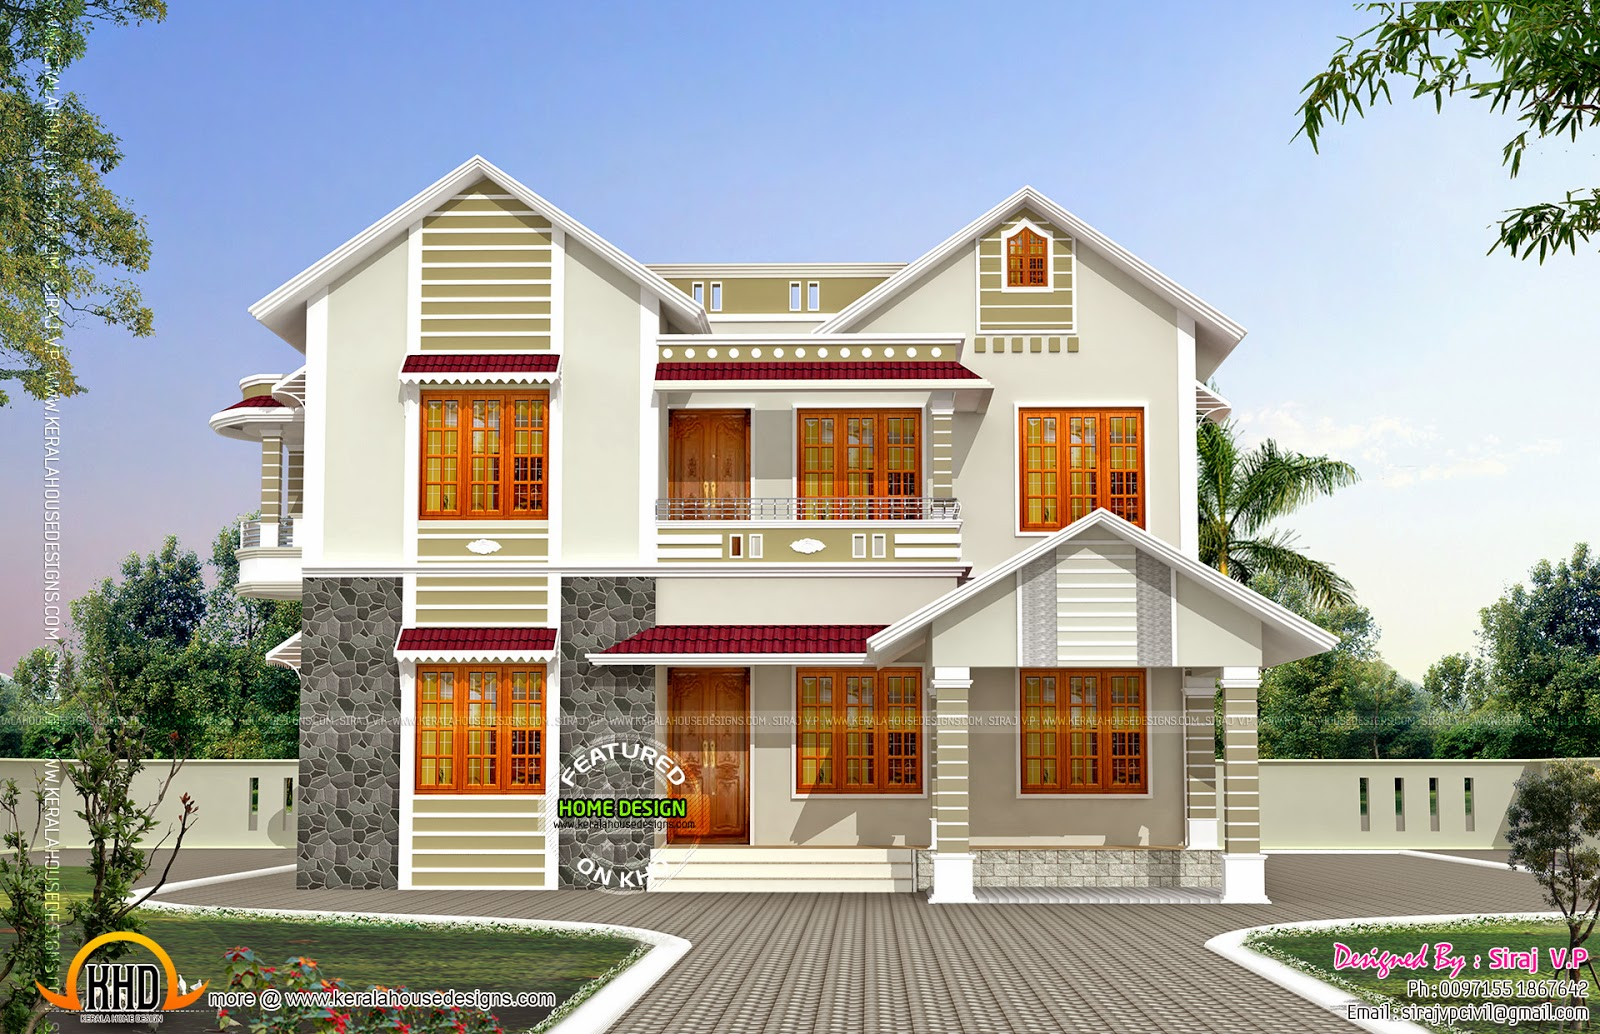 10 home design front view images modern house design for Home front design photo